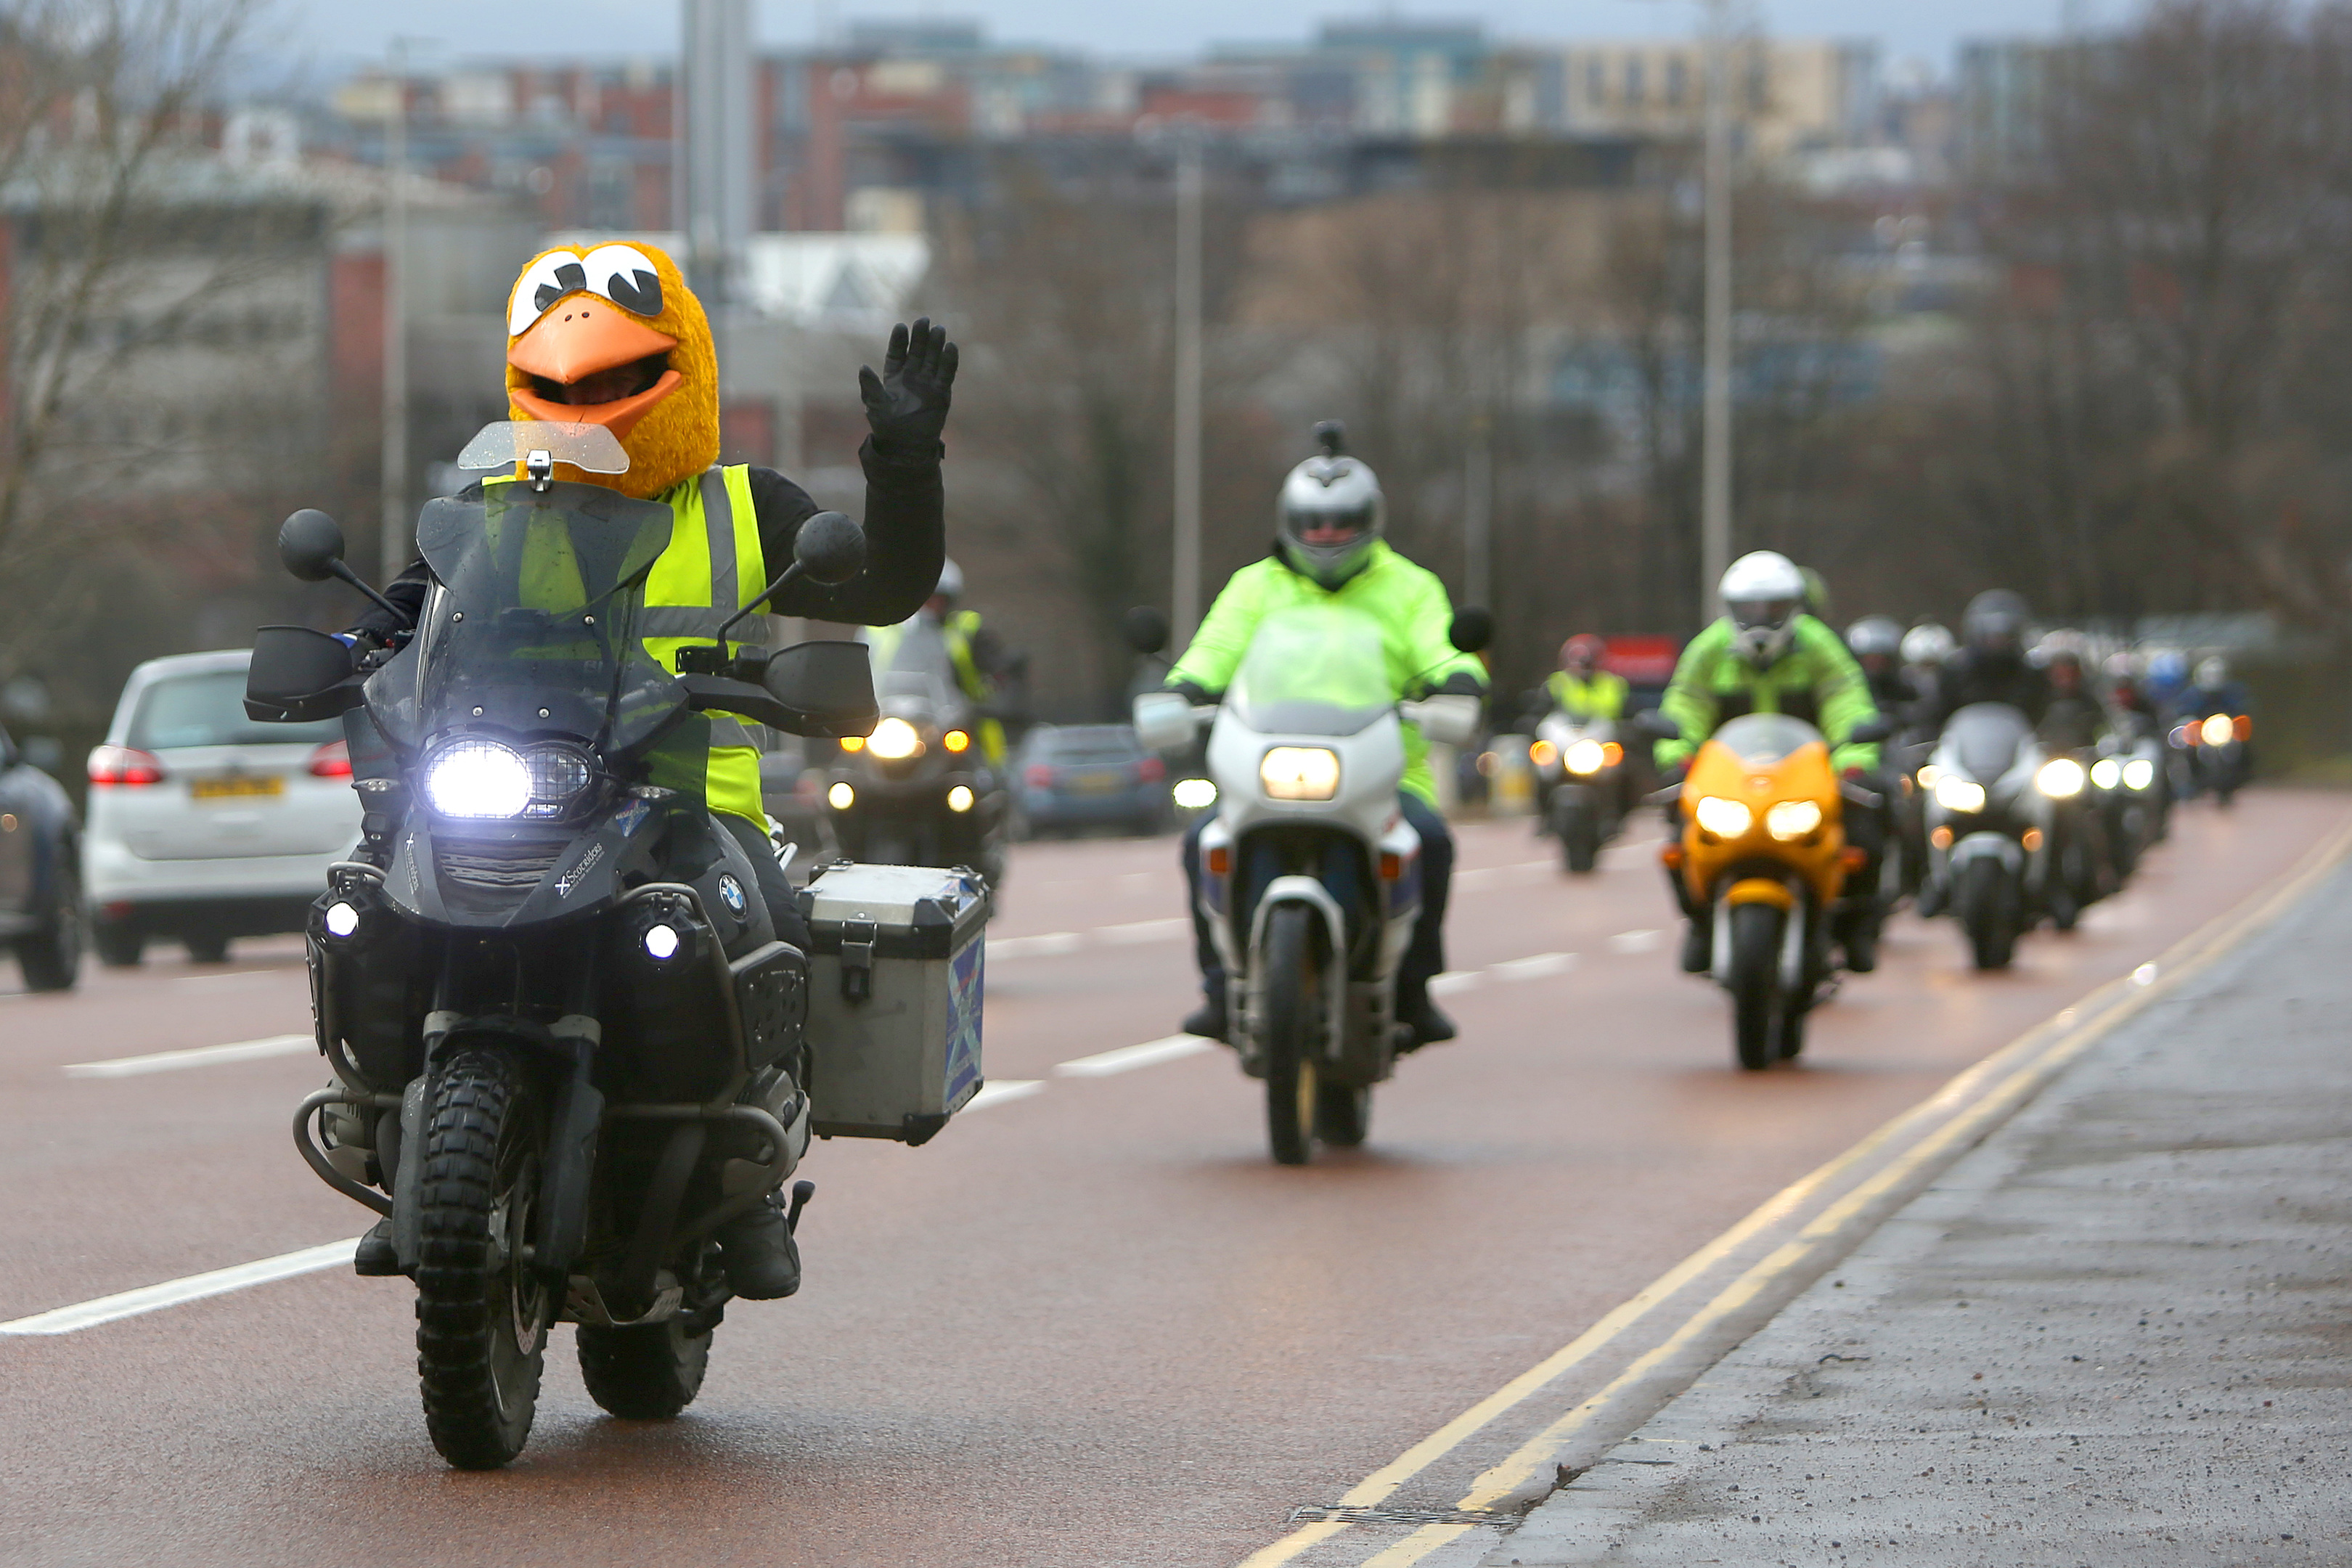 Alan Kelly from Scotriders leading motorbikes leaving Scotriders with a police escort.